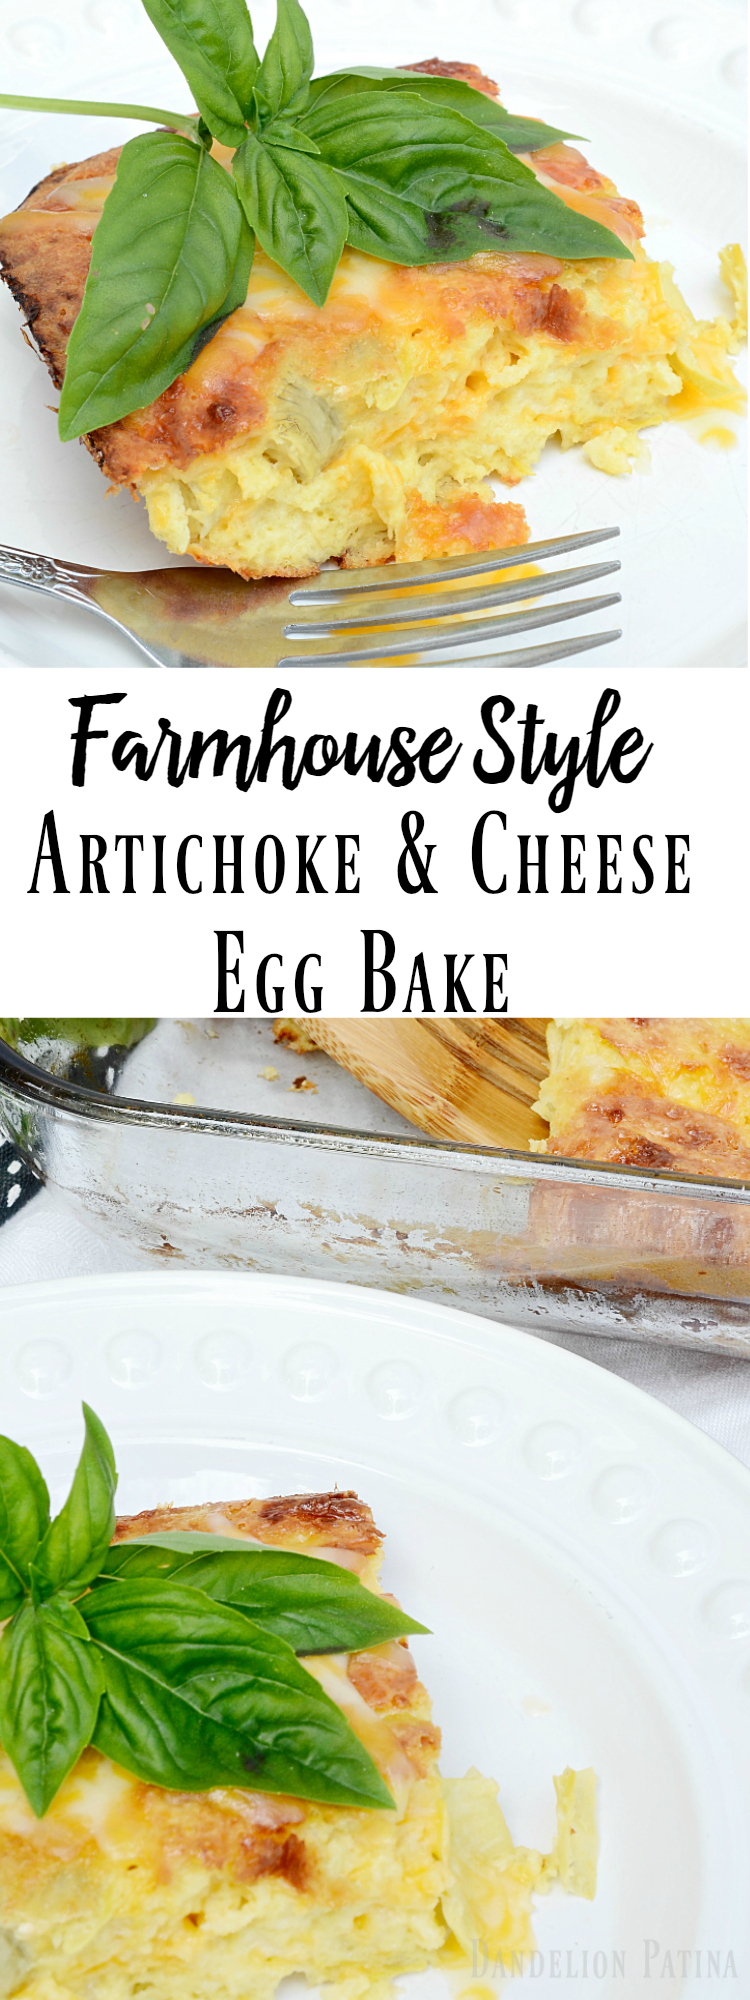 farmhouse style artichoke egg bake recipe